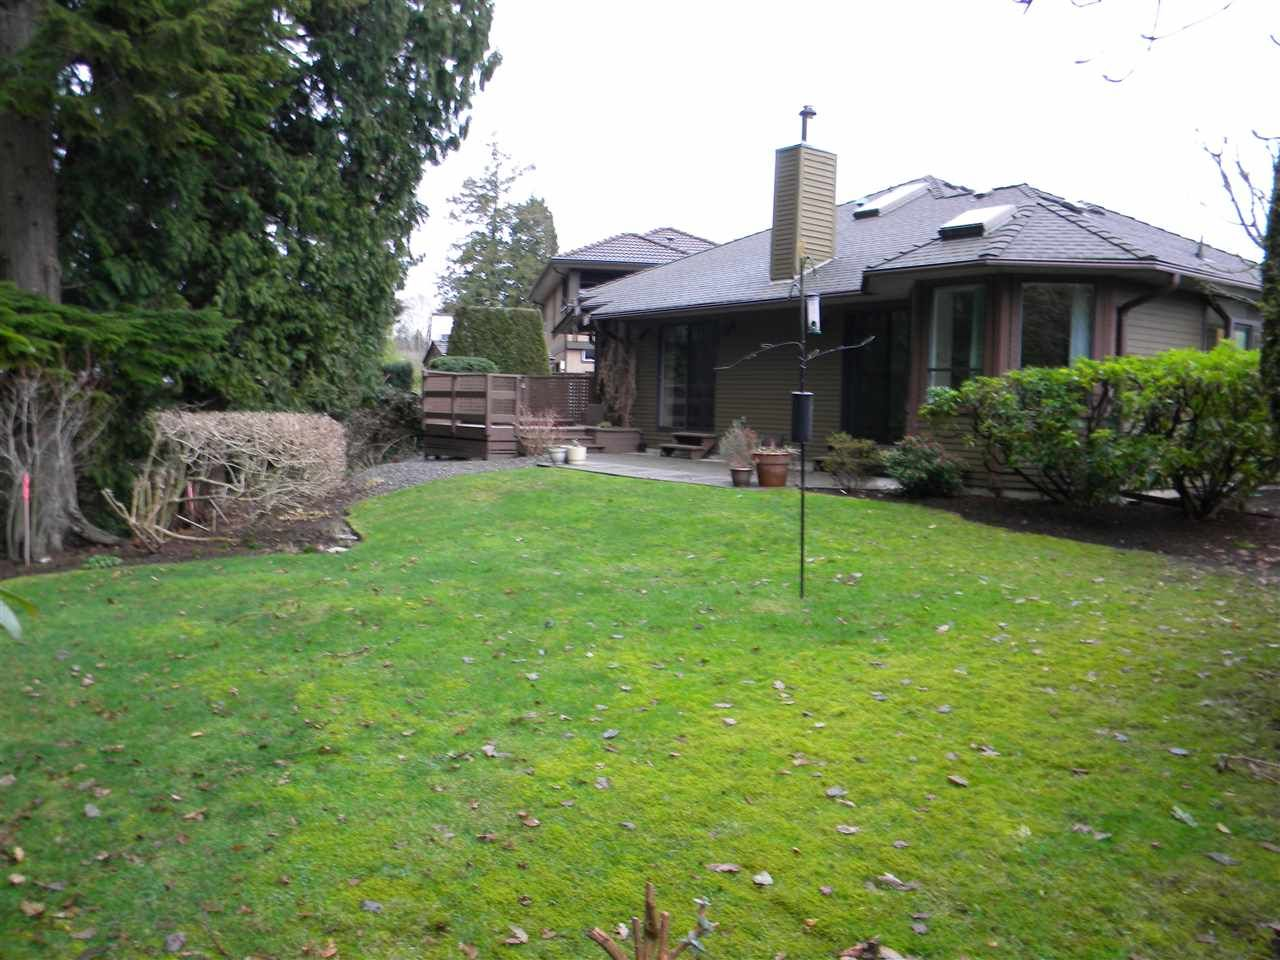 """Photo 19: Photos: 16272 11 Avenue in Surrey: King George Corridor House for sale in """"SOUTH MERIDIAN/MCNALLY CREEK"""" (South Surrey White Rock)  : MLS®# R2127782"""